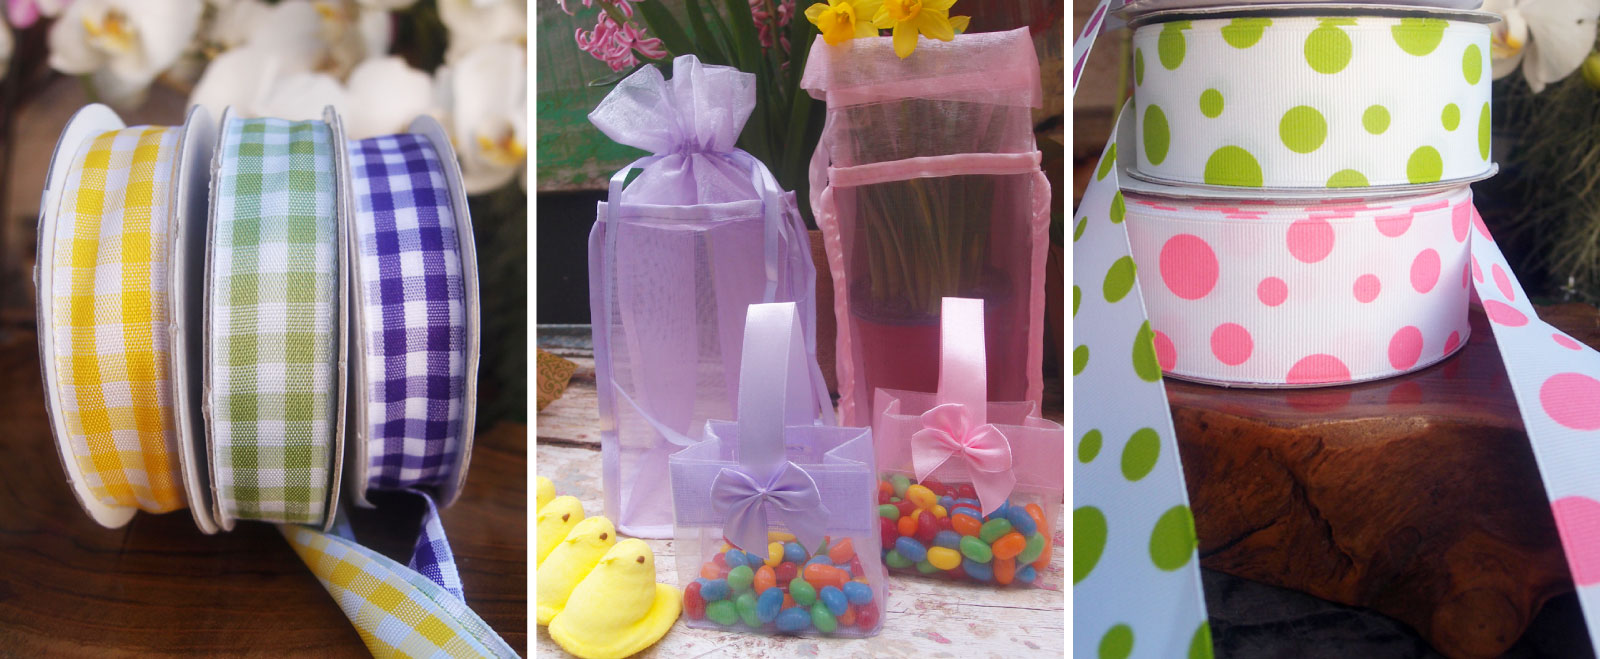 Spring Easter Decor Gingham Ribbons Bags